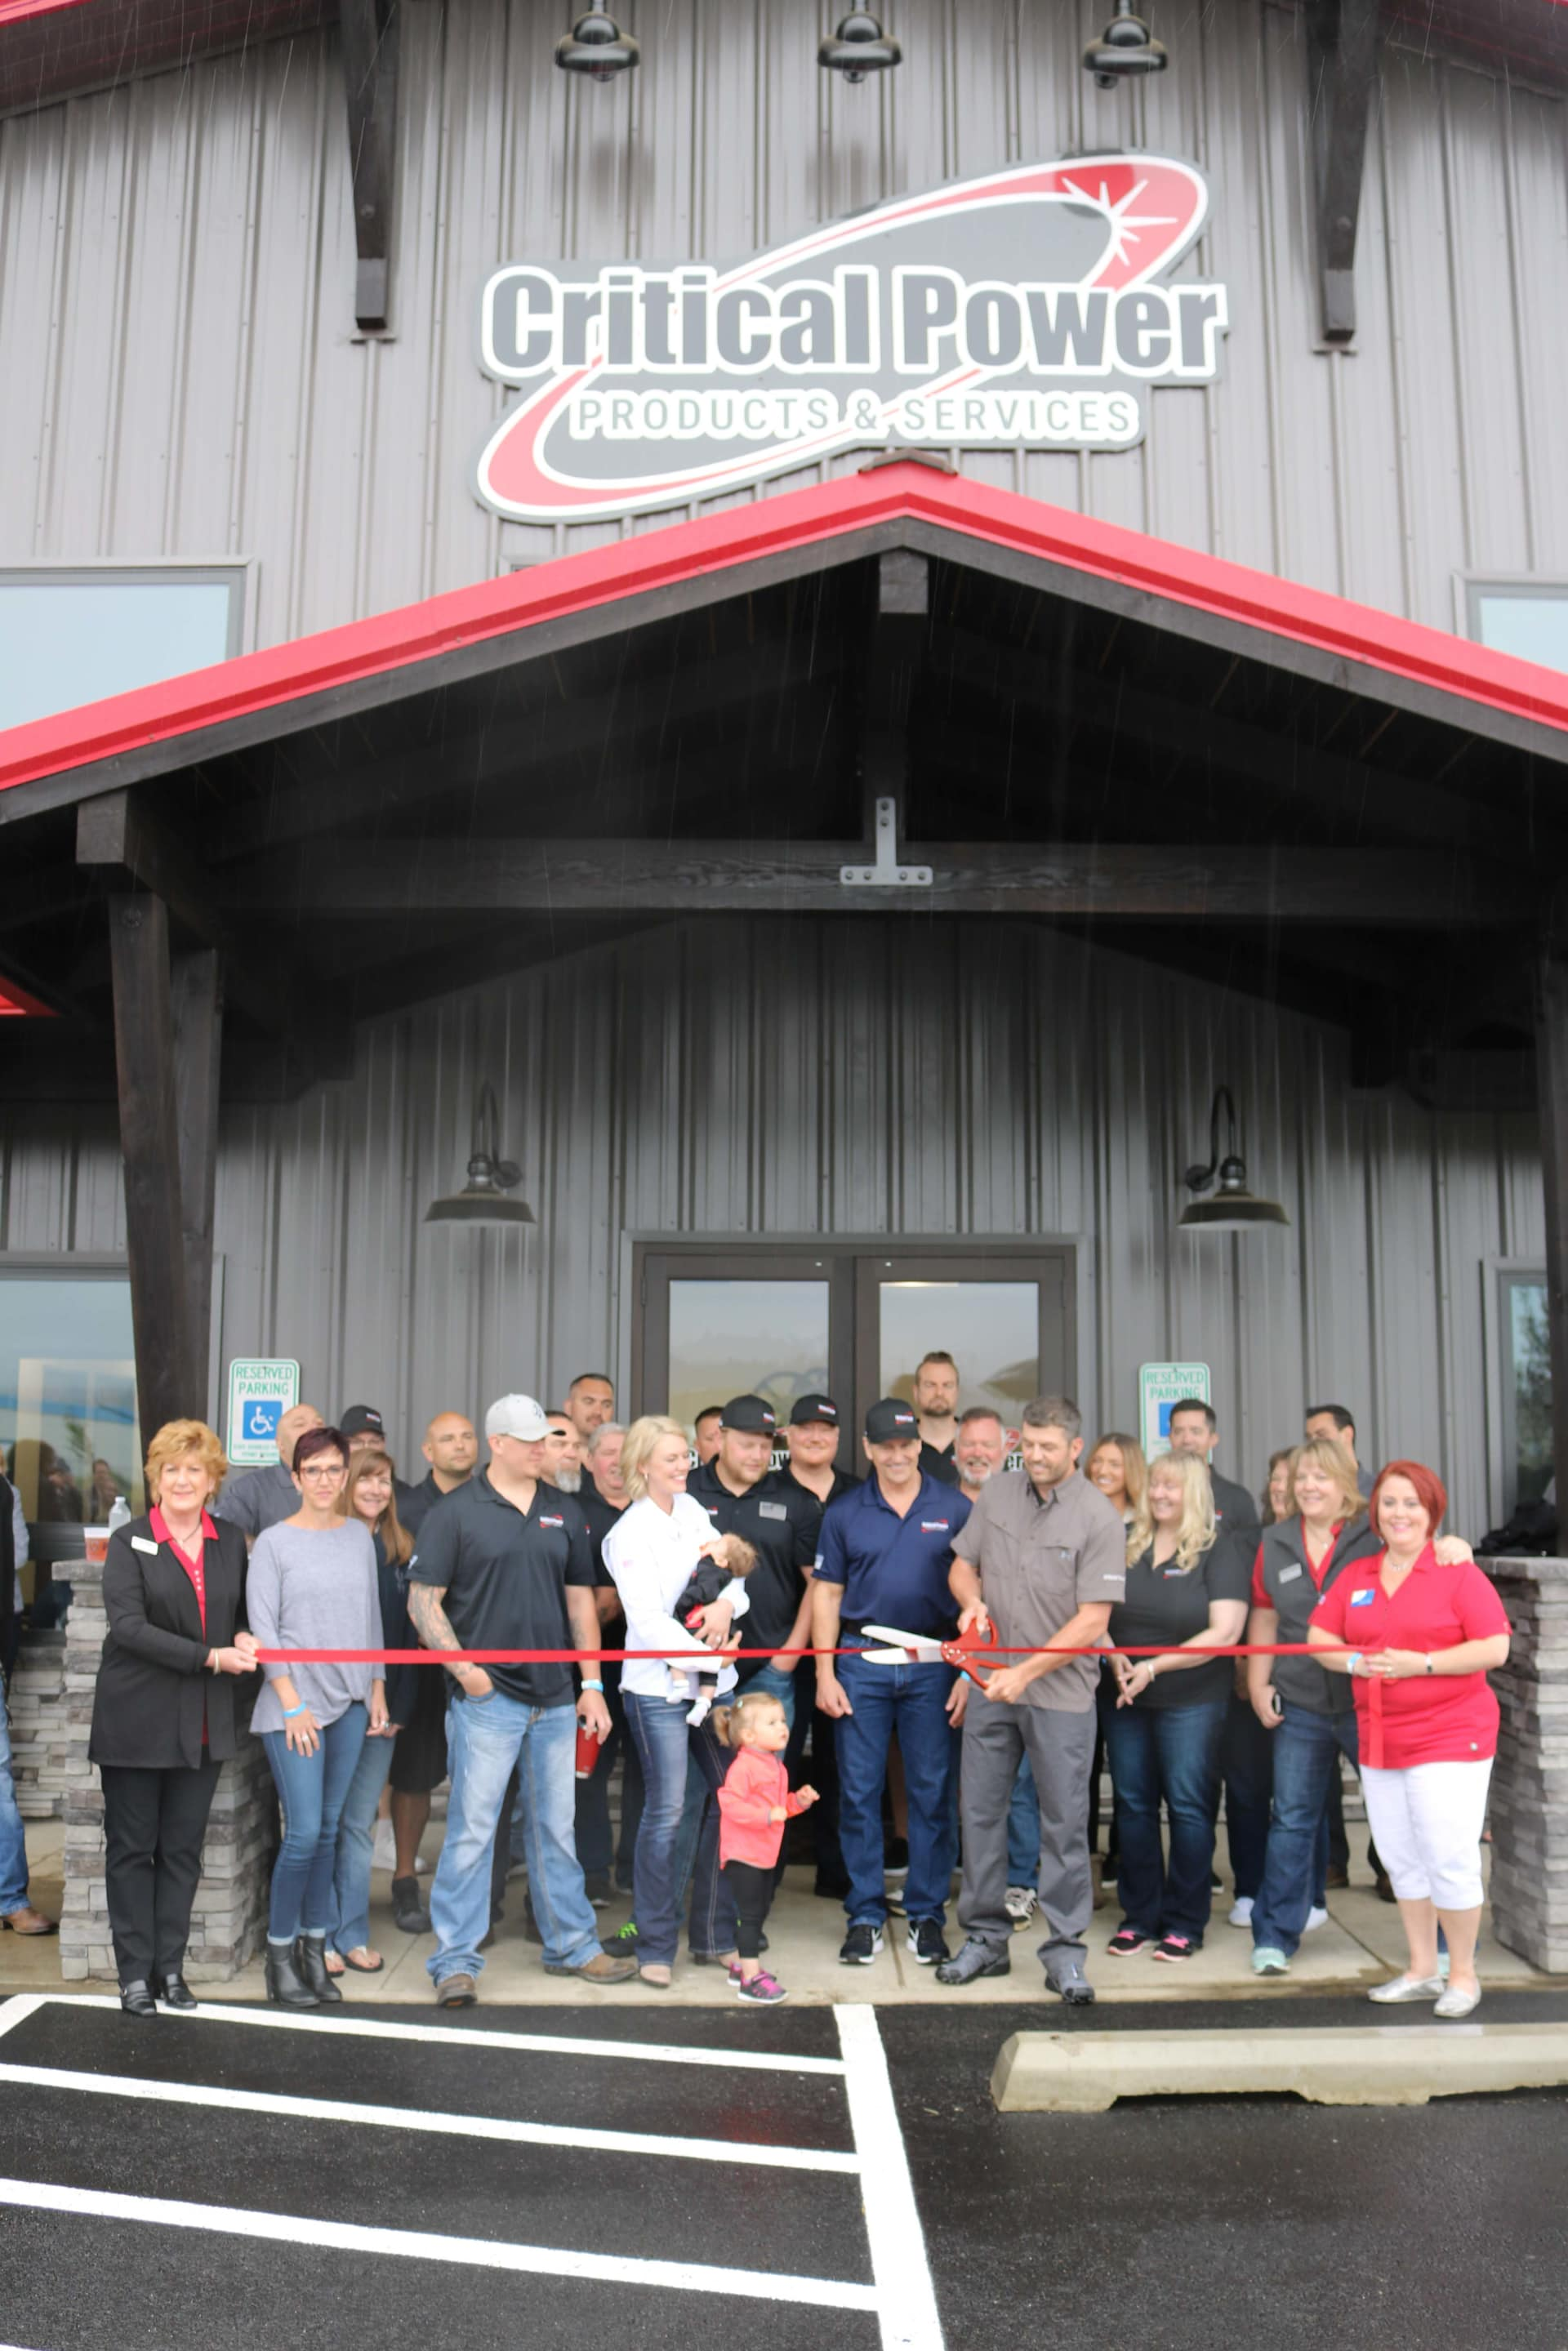 Critical-Power-Products-and-Services-Ribbon-Cutting.jpg